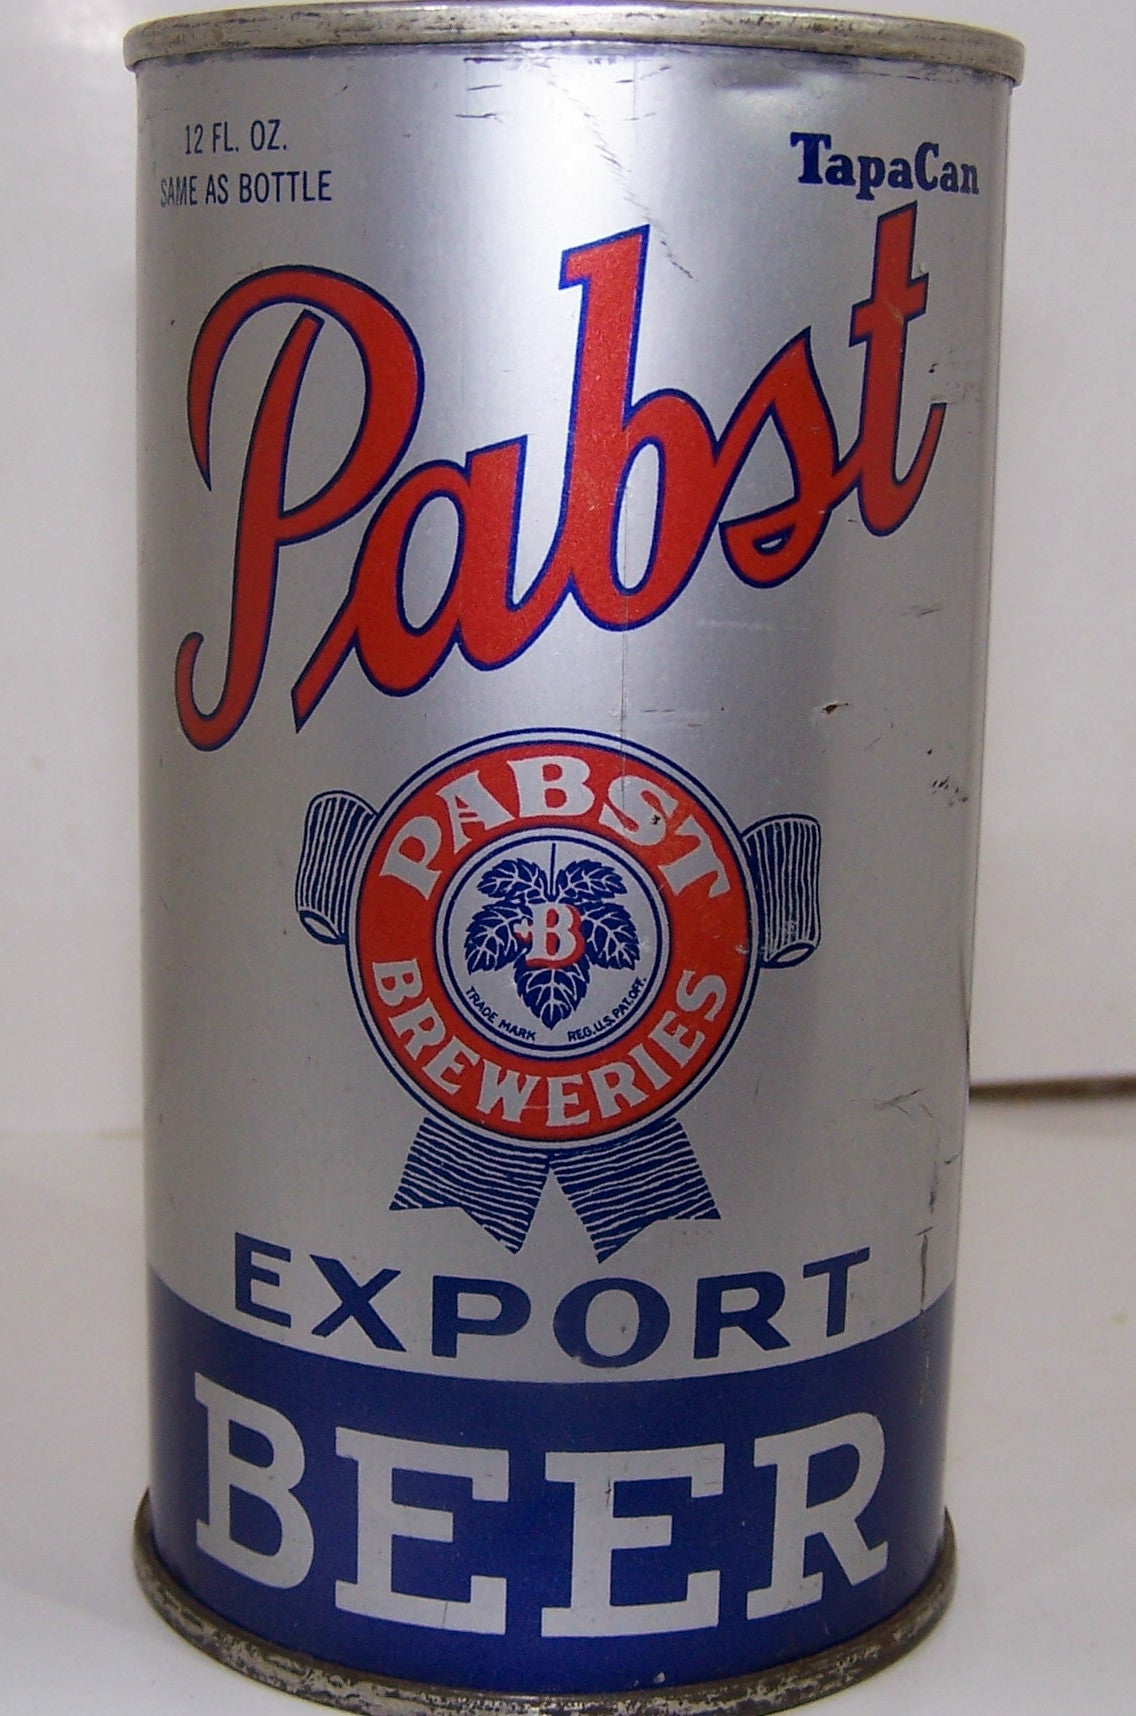 Pabst Export Beer, Lilek page # 651, Grade 1/1- Sold on 4/8/15